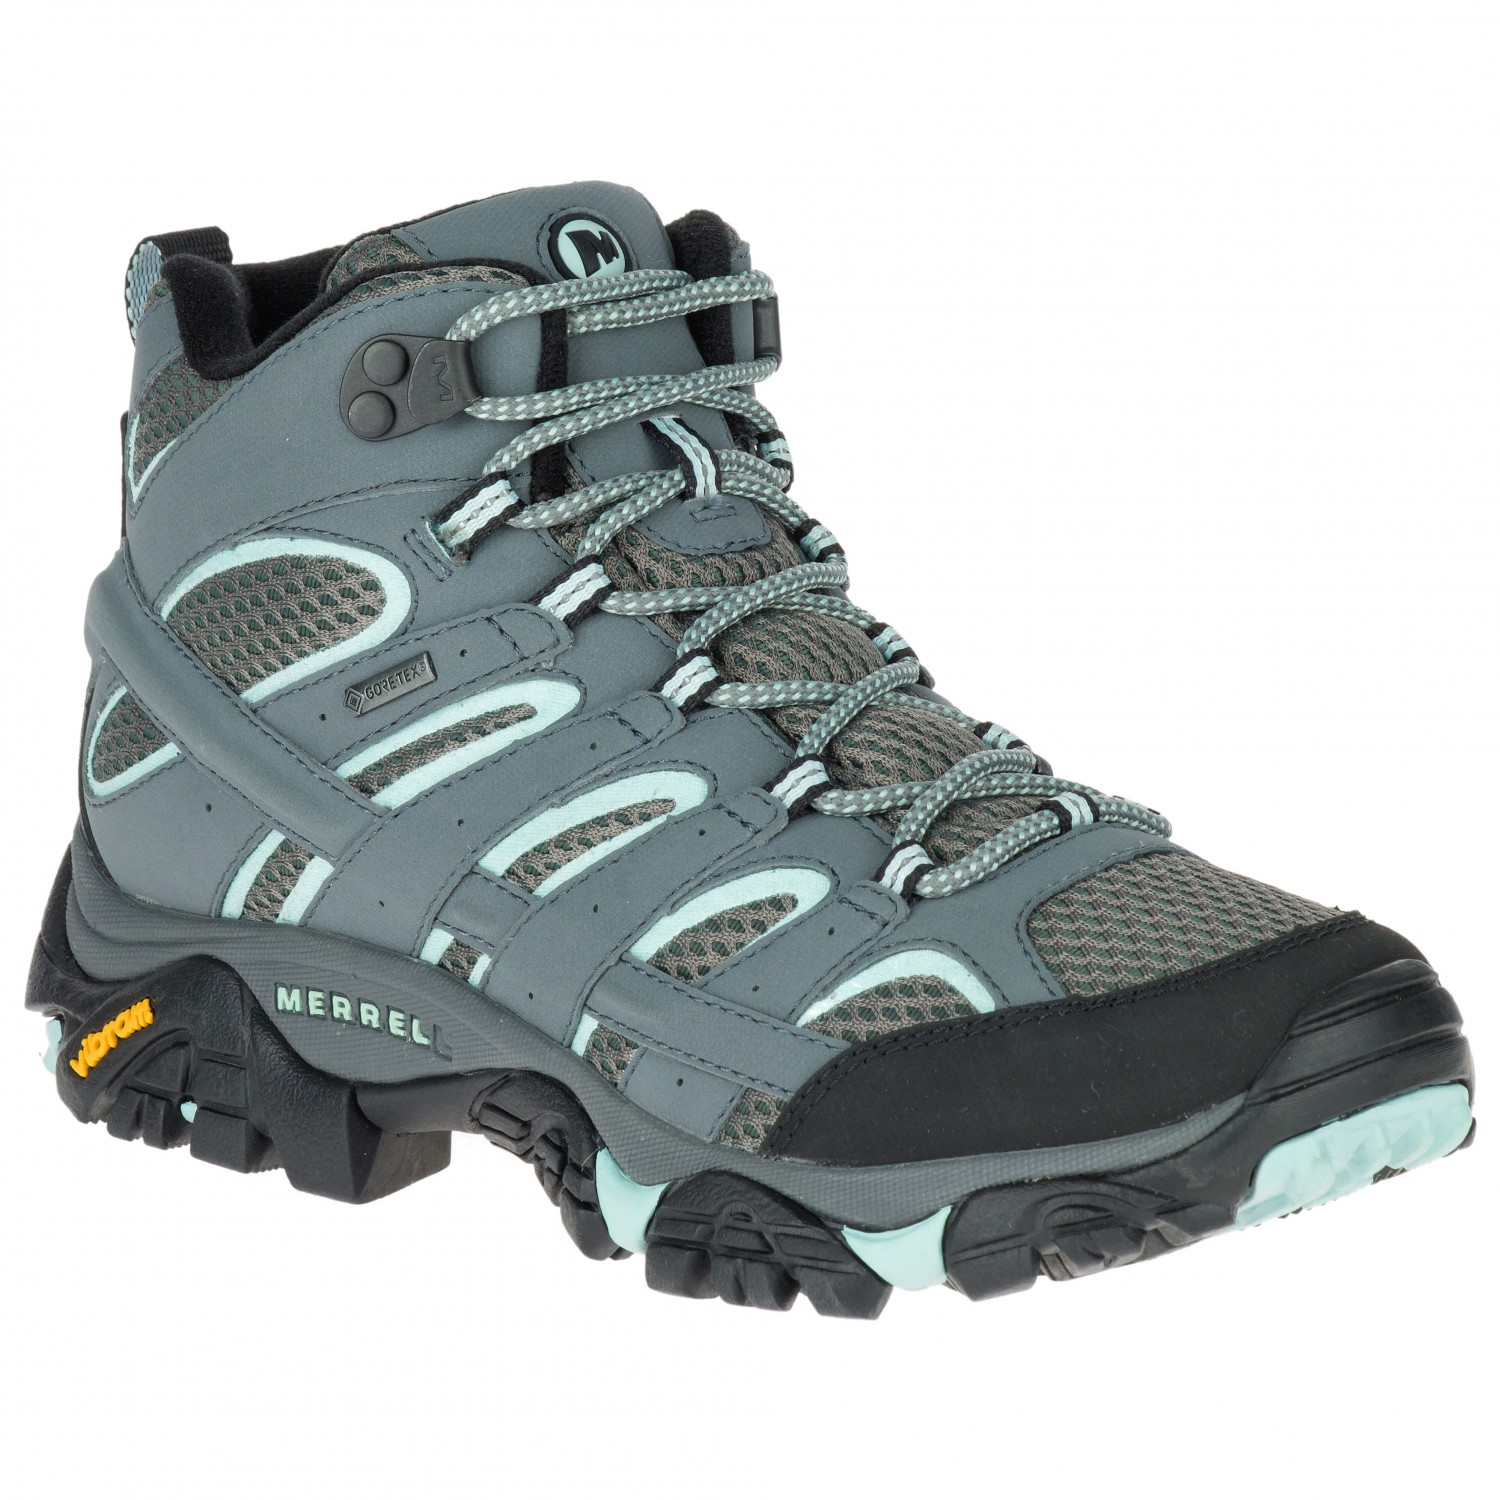 5061cca82d5 Merrell Moab 2 Mid GTX - Walking Boots Women's   Free UK Delivery ...